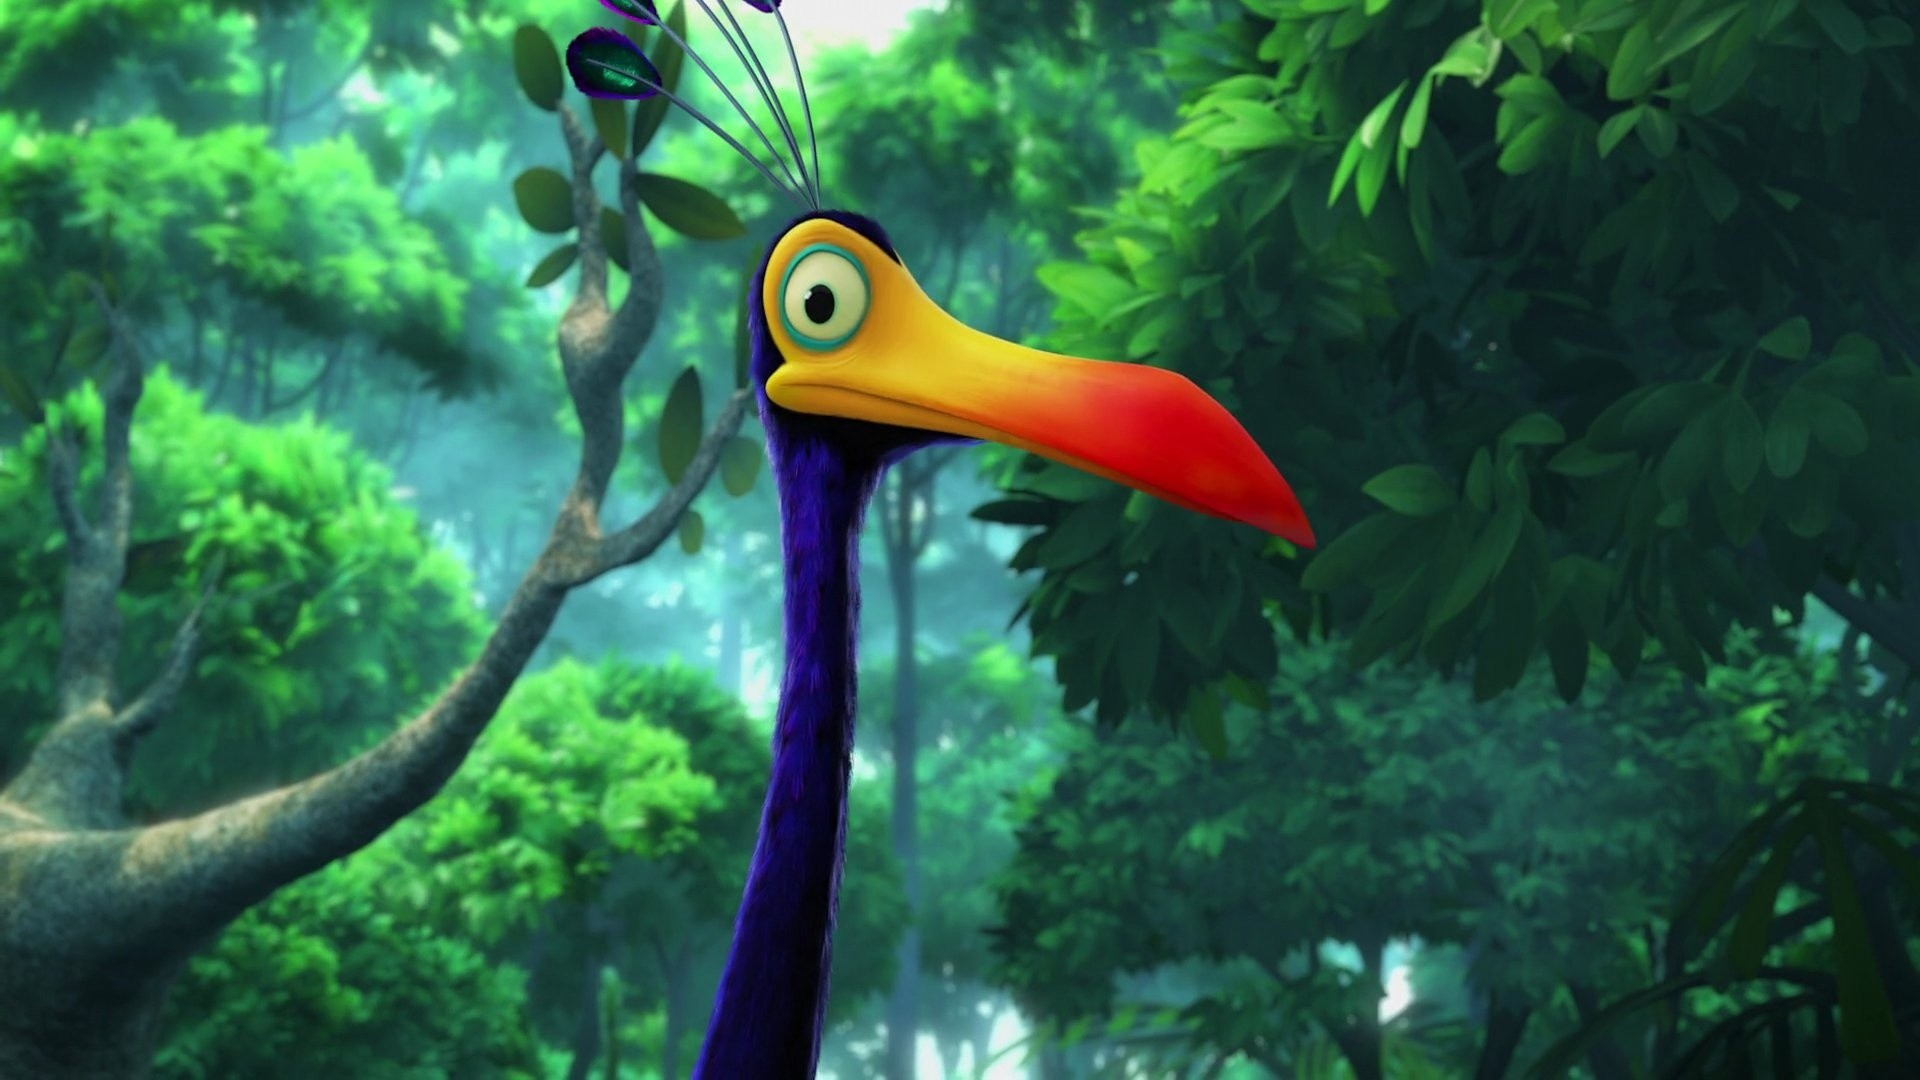 1920x1080 Kevin the Bird, Up, Pixar, bird, Kevin, beak, cartoon